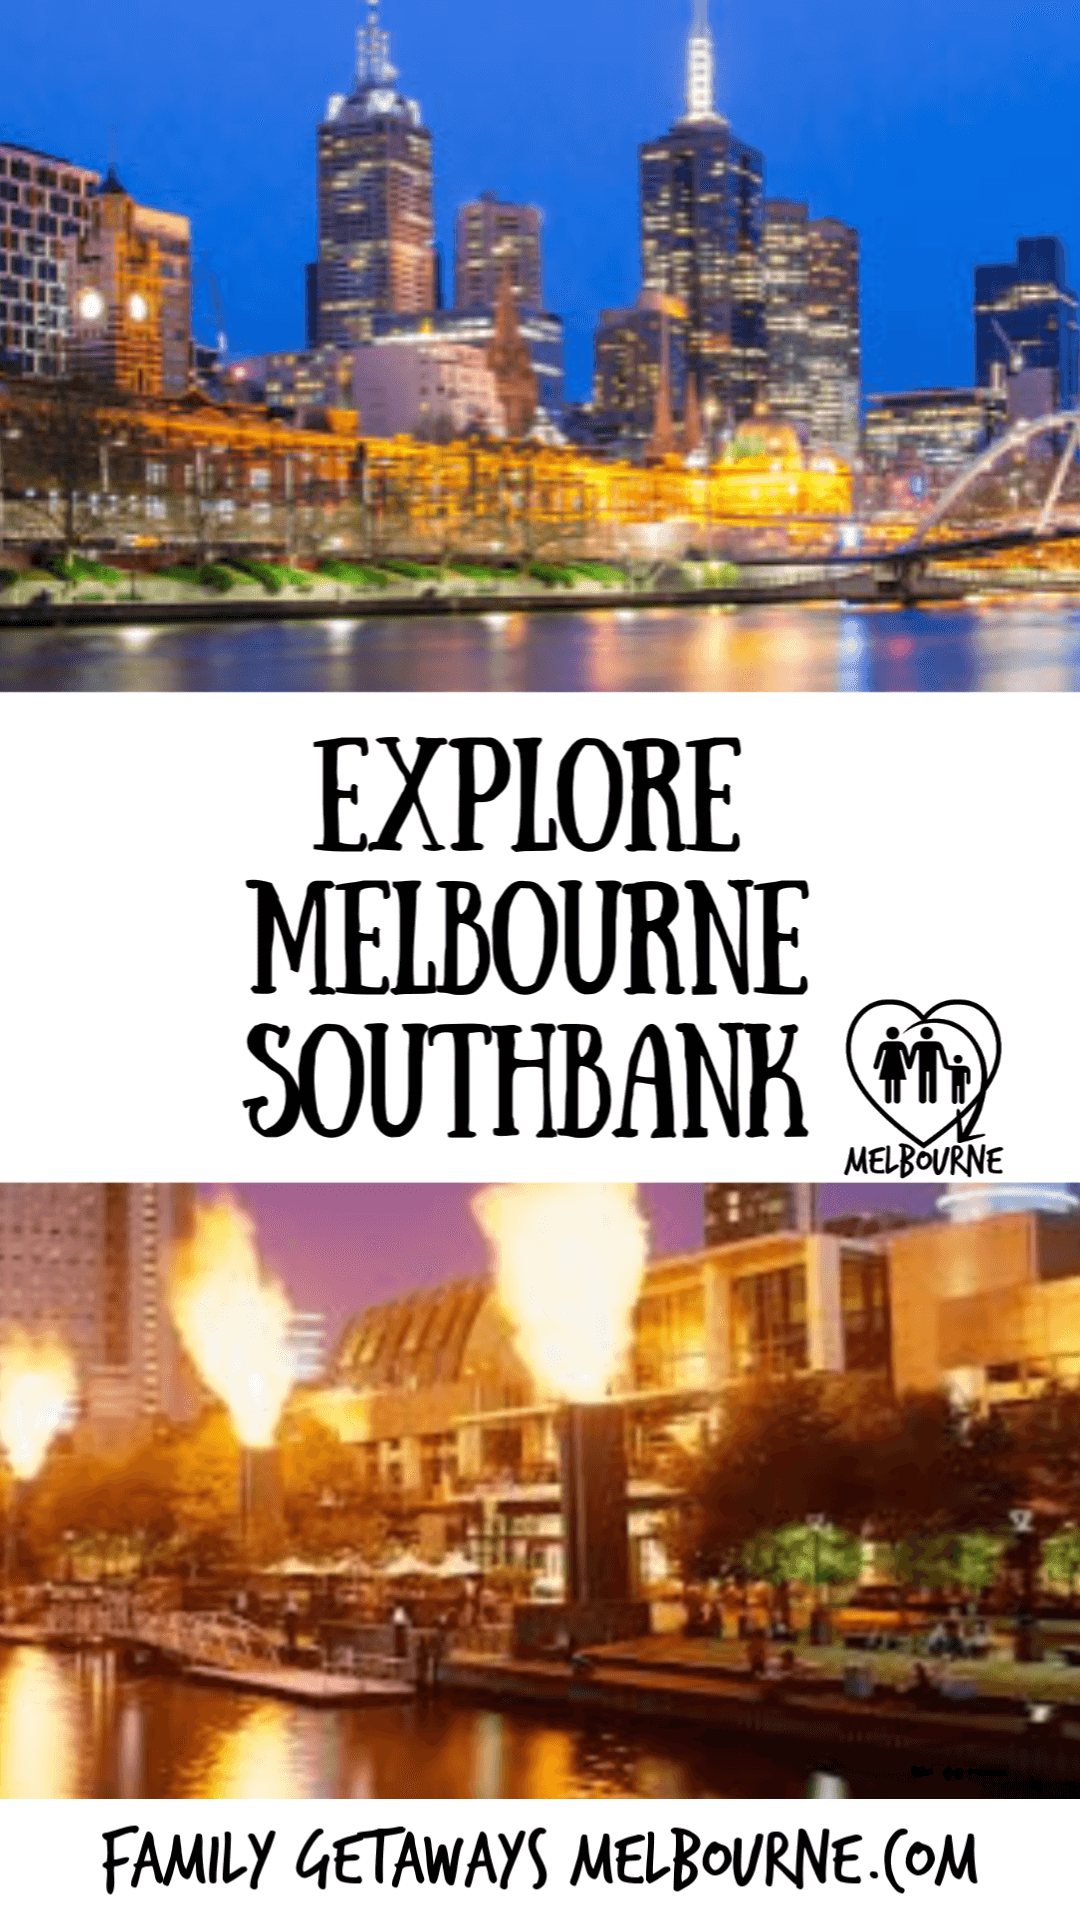 image of Southbank-Melbourne Precinct to pin to Pinterest